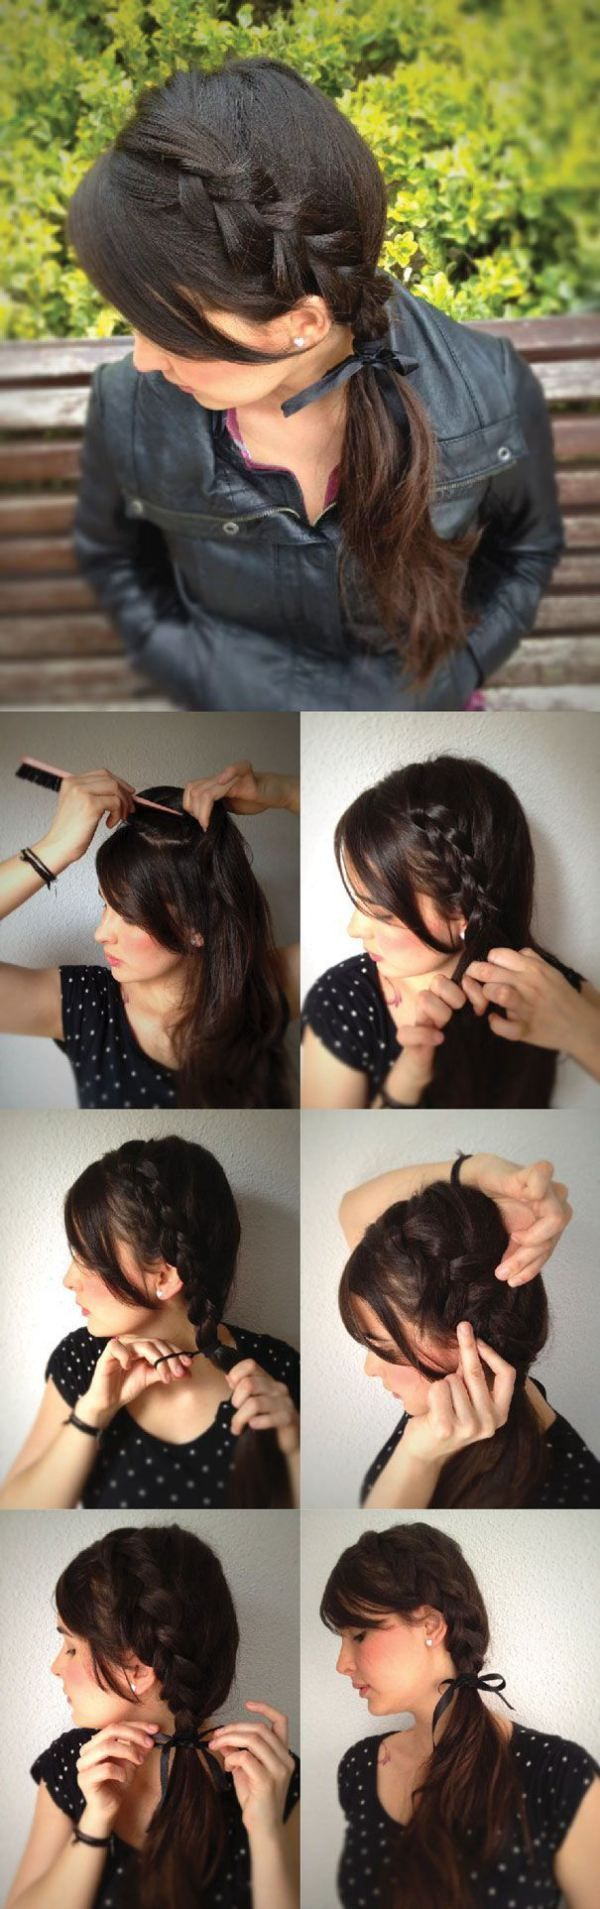 How to Make a Boho Braid- Boho Braided Hair Tutorials You Must Love